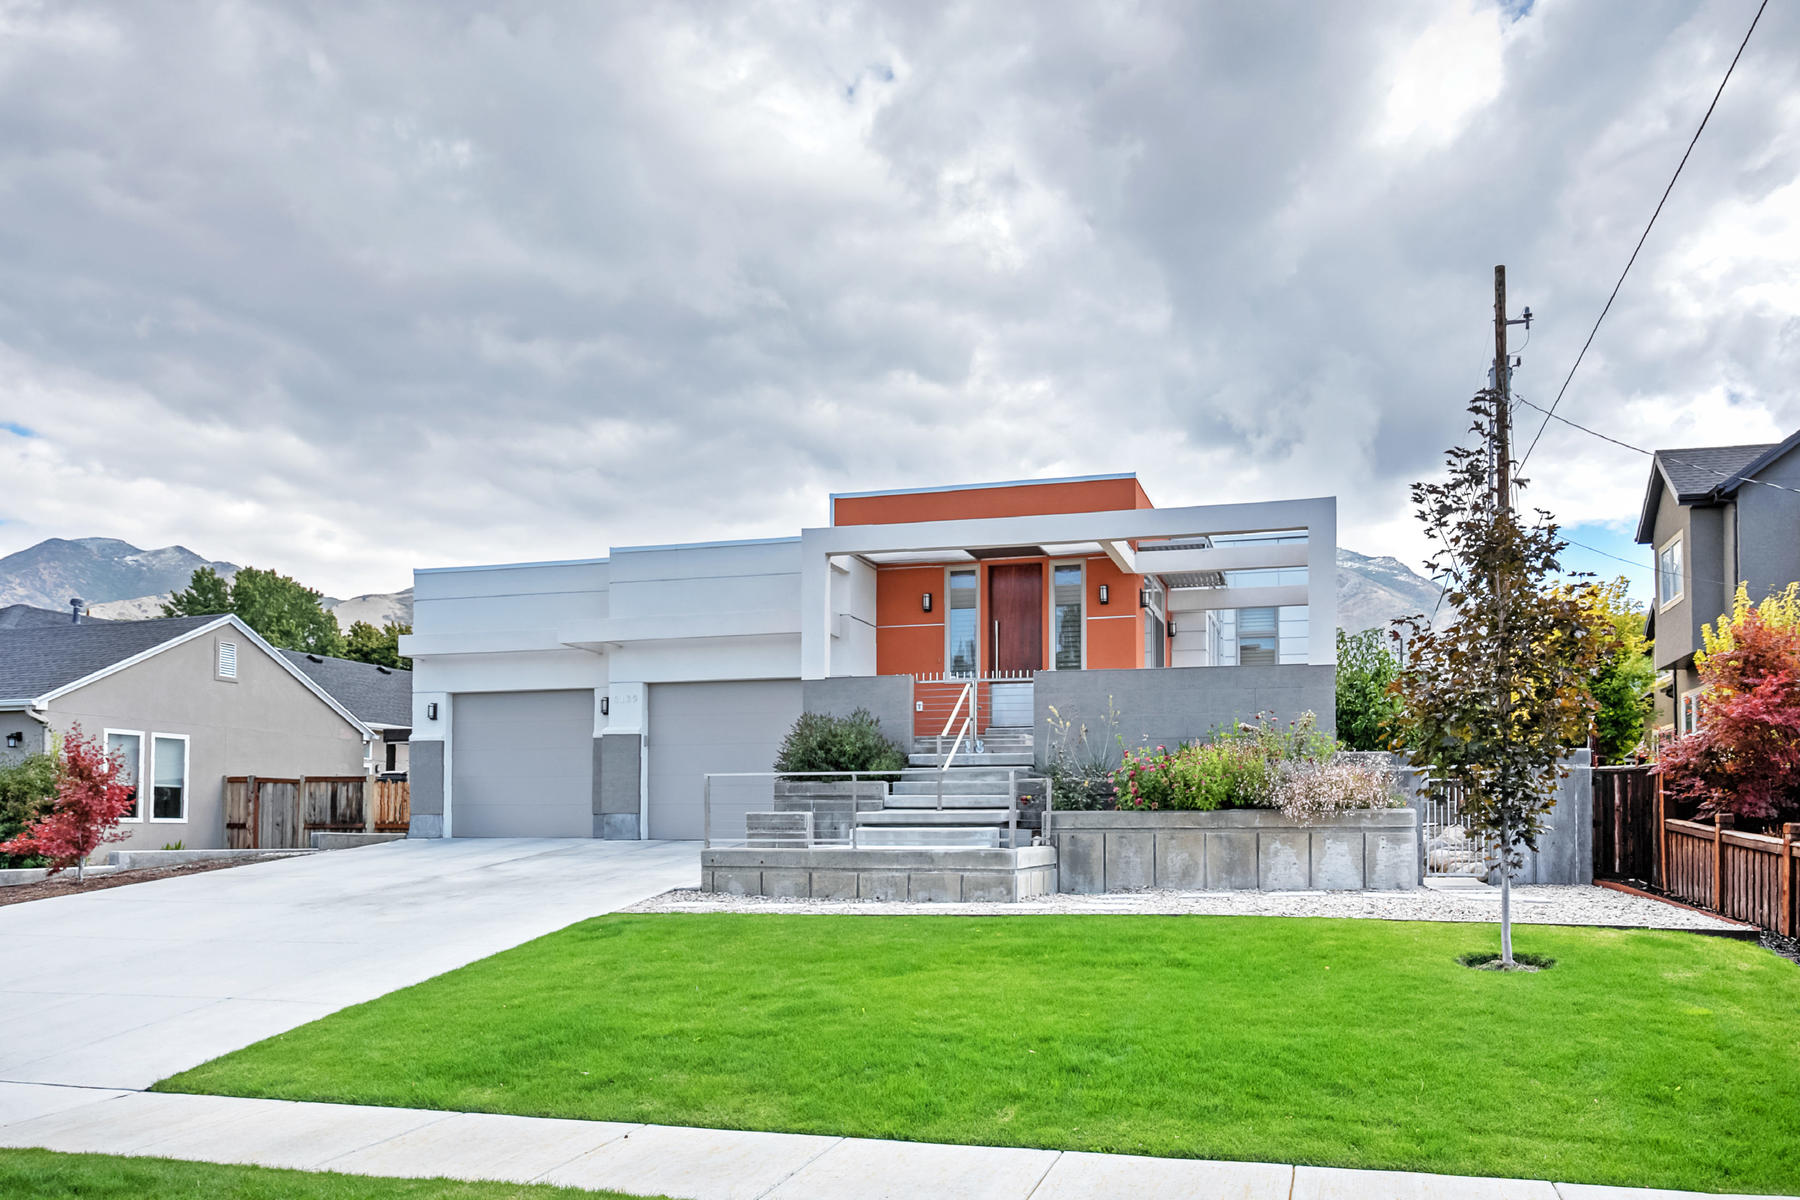 Maison unifamiliale pour l Vente à Incredible Custom Contemporary Home 3139 South 2600 East, Salt Lake City, Utah, 84109 États-Unis